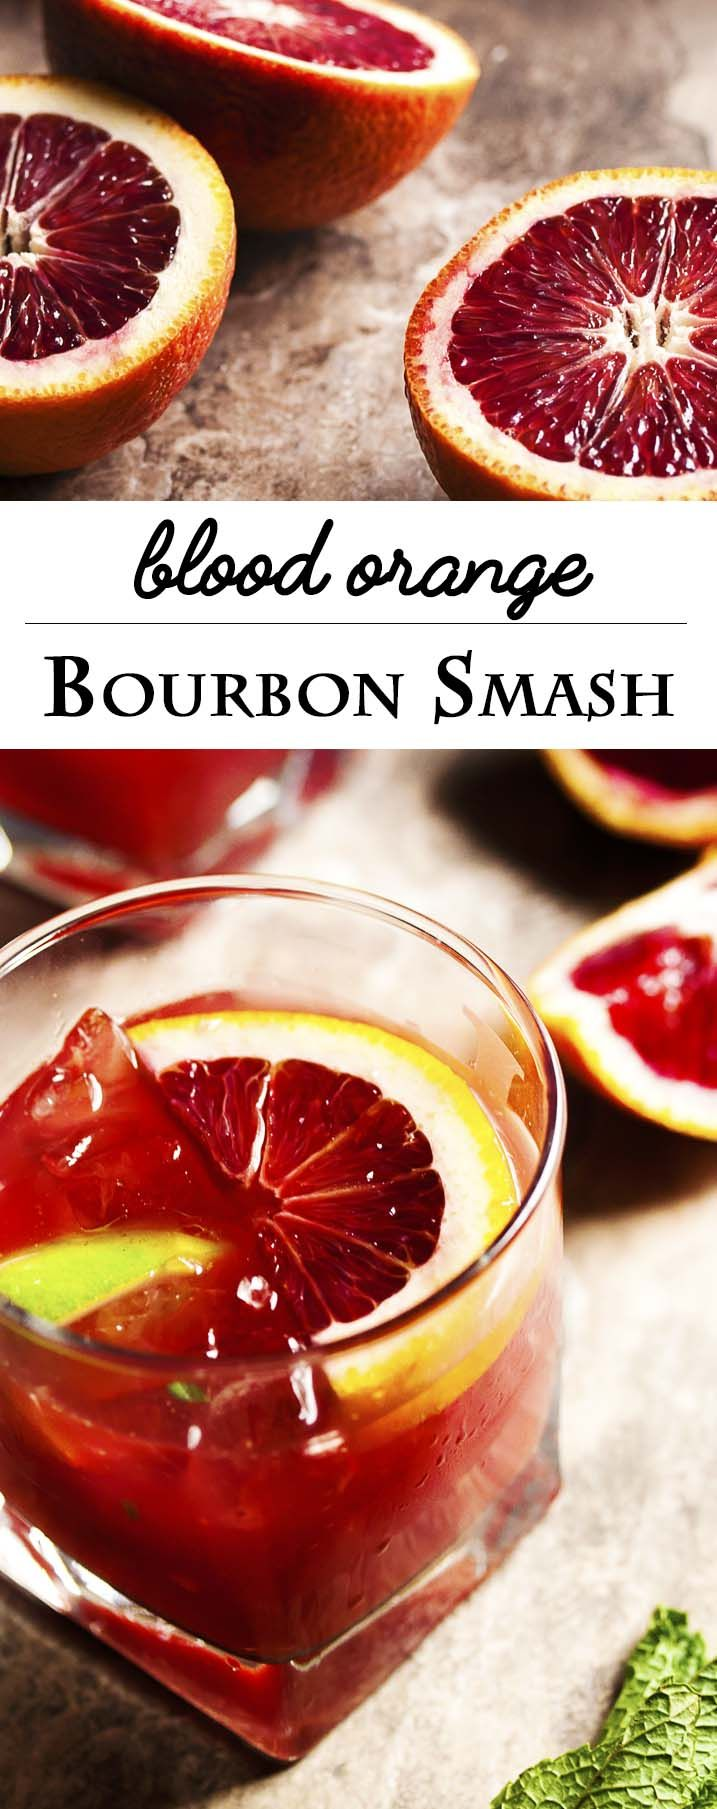 Blood Orange Bourbon Smash - Blood oranges give this Bourbon Smash a gorgeous ruby color. Maple syrup provides a bit of smokey, sweetness while lime and mint give the drink an extra pop of flavor. Have it as is for smooth sipping or add a splash of soda water for a lively cooler. | justalittlebitofbacon.com